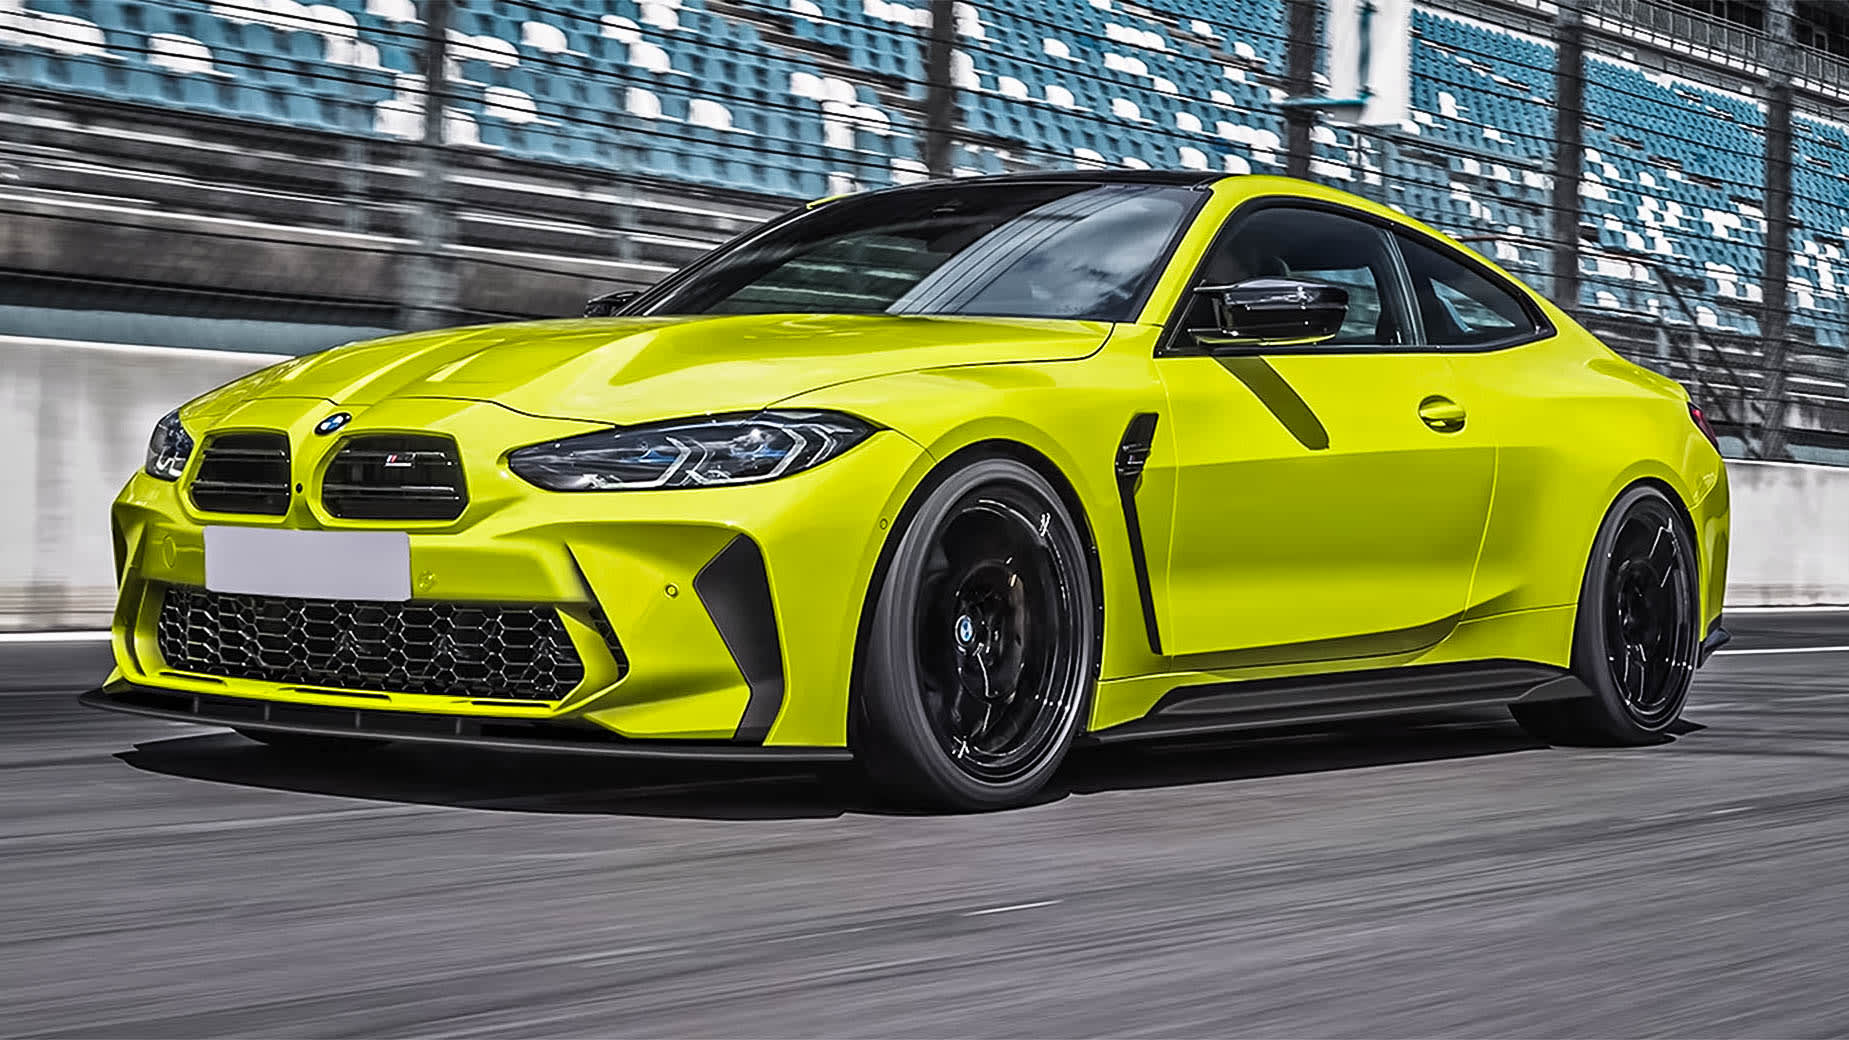 Aftermarket Bmw M3 And M4 Grilles And Bumper Set For Production Caradvice